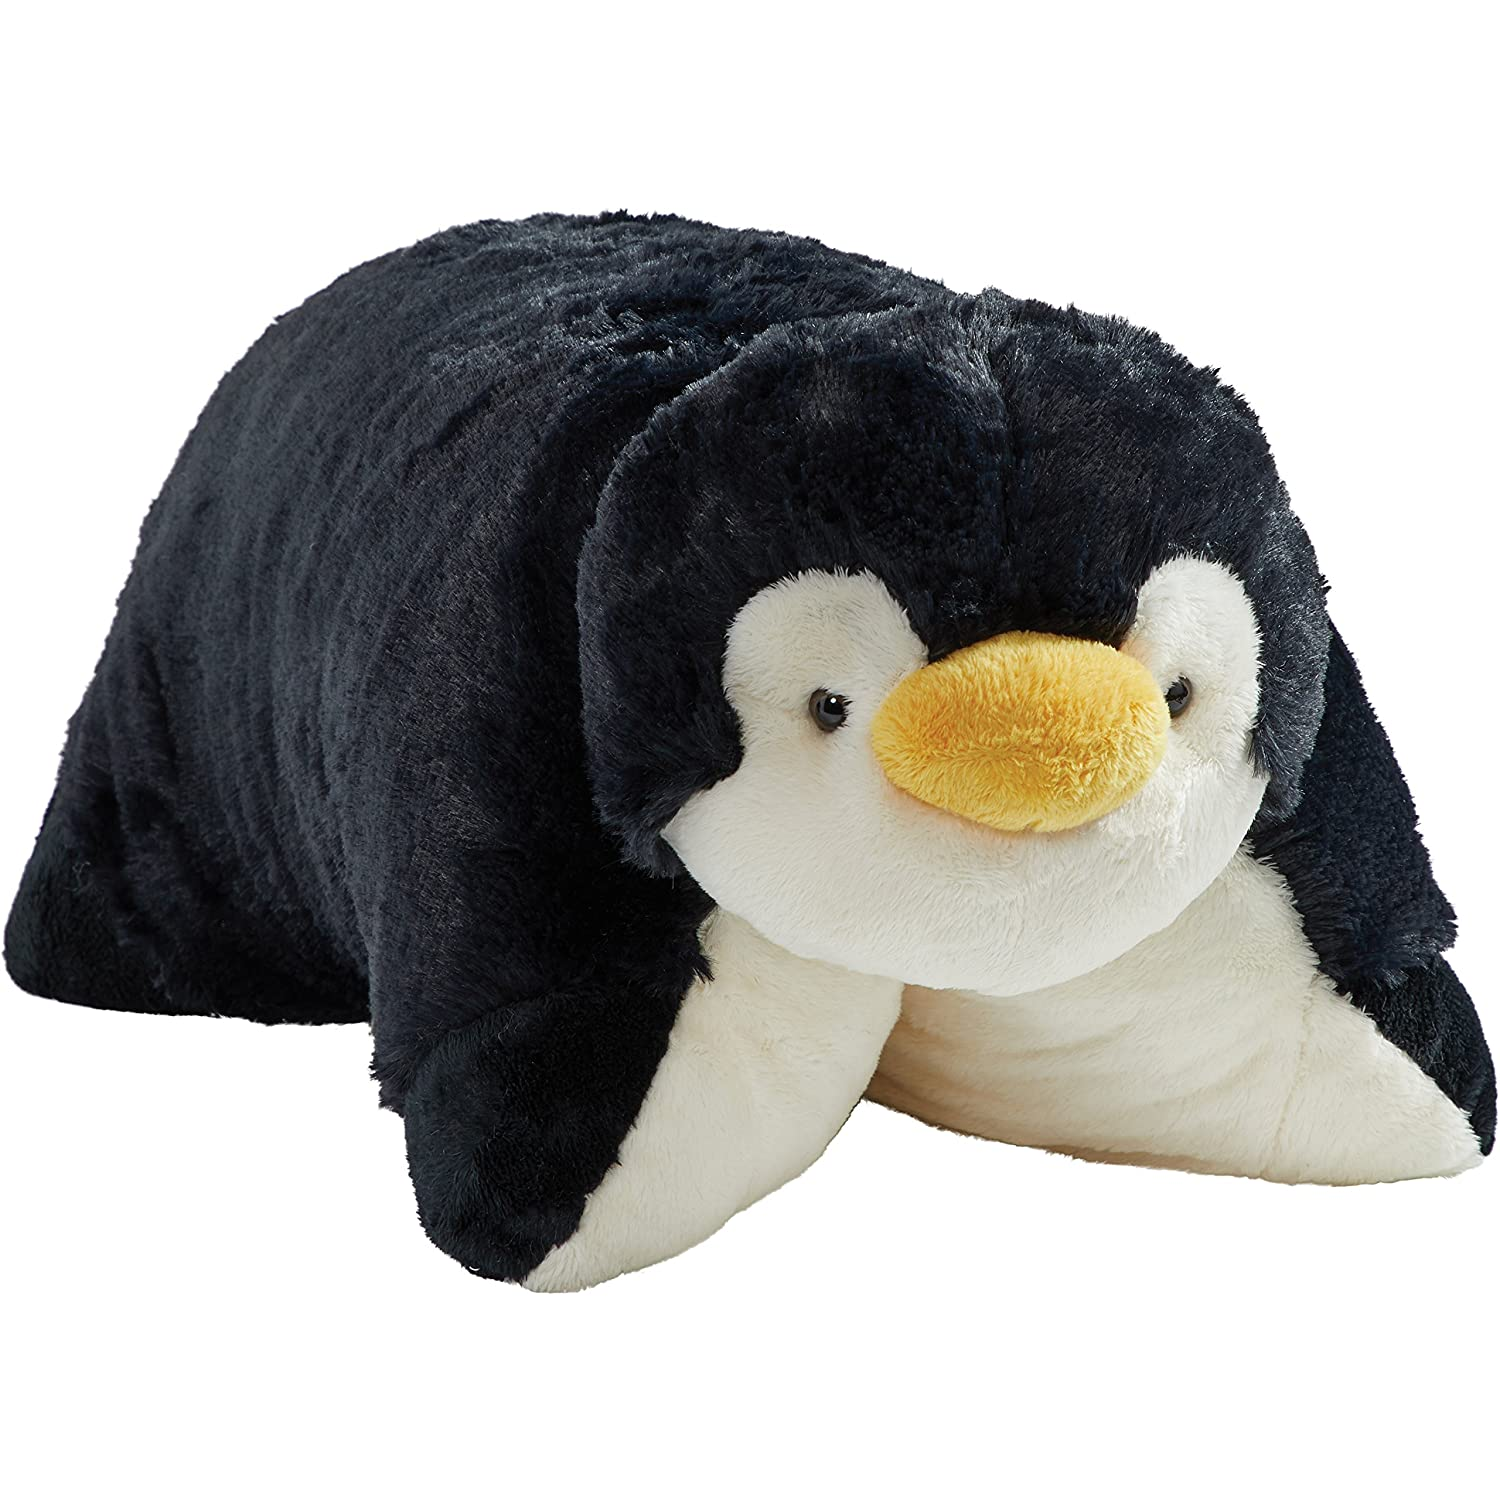 Amazon Com Pillow Pets Signature Stuffed Animal Plush Toy 18